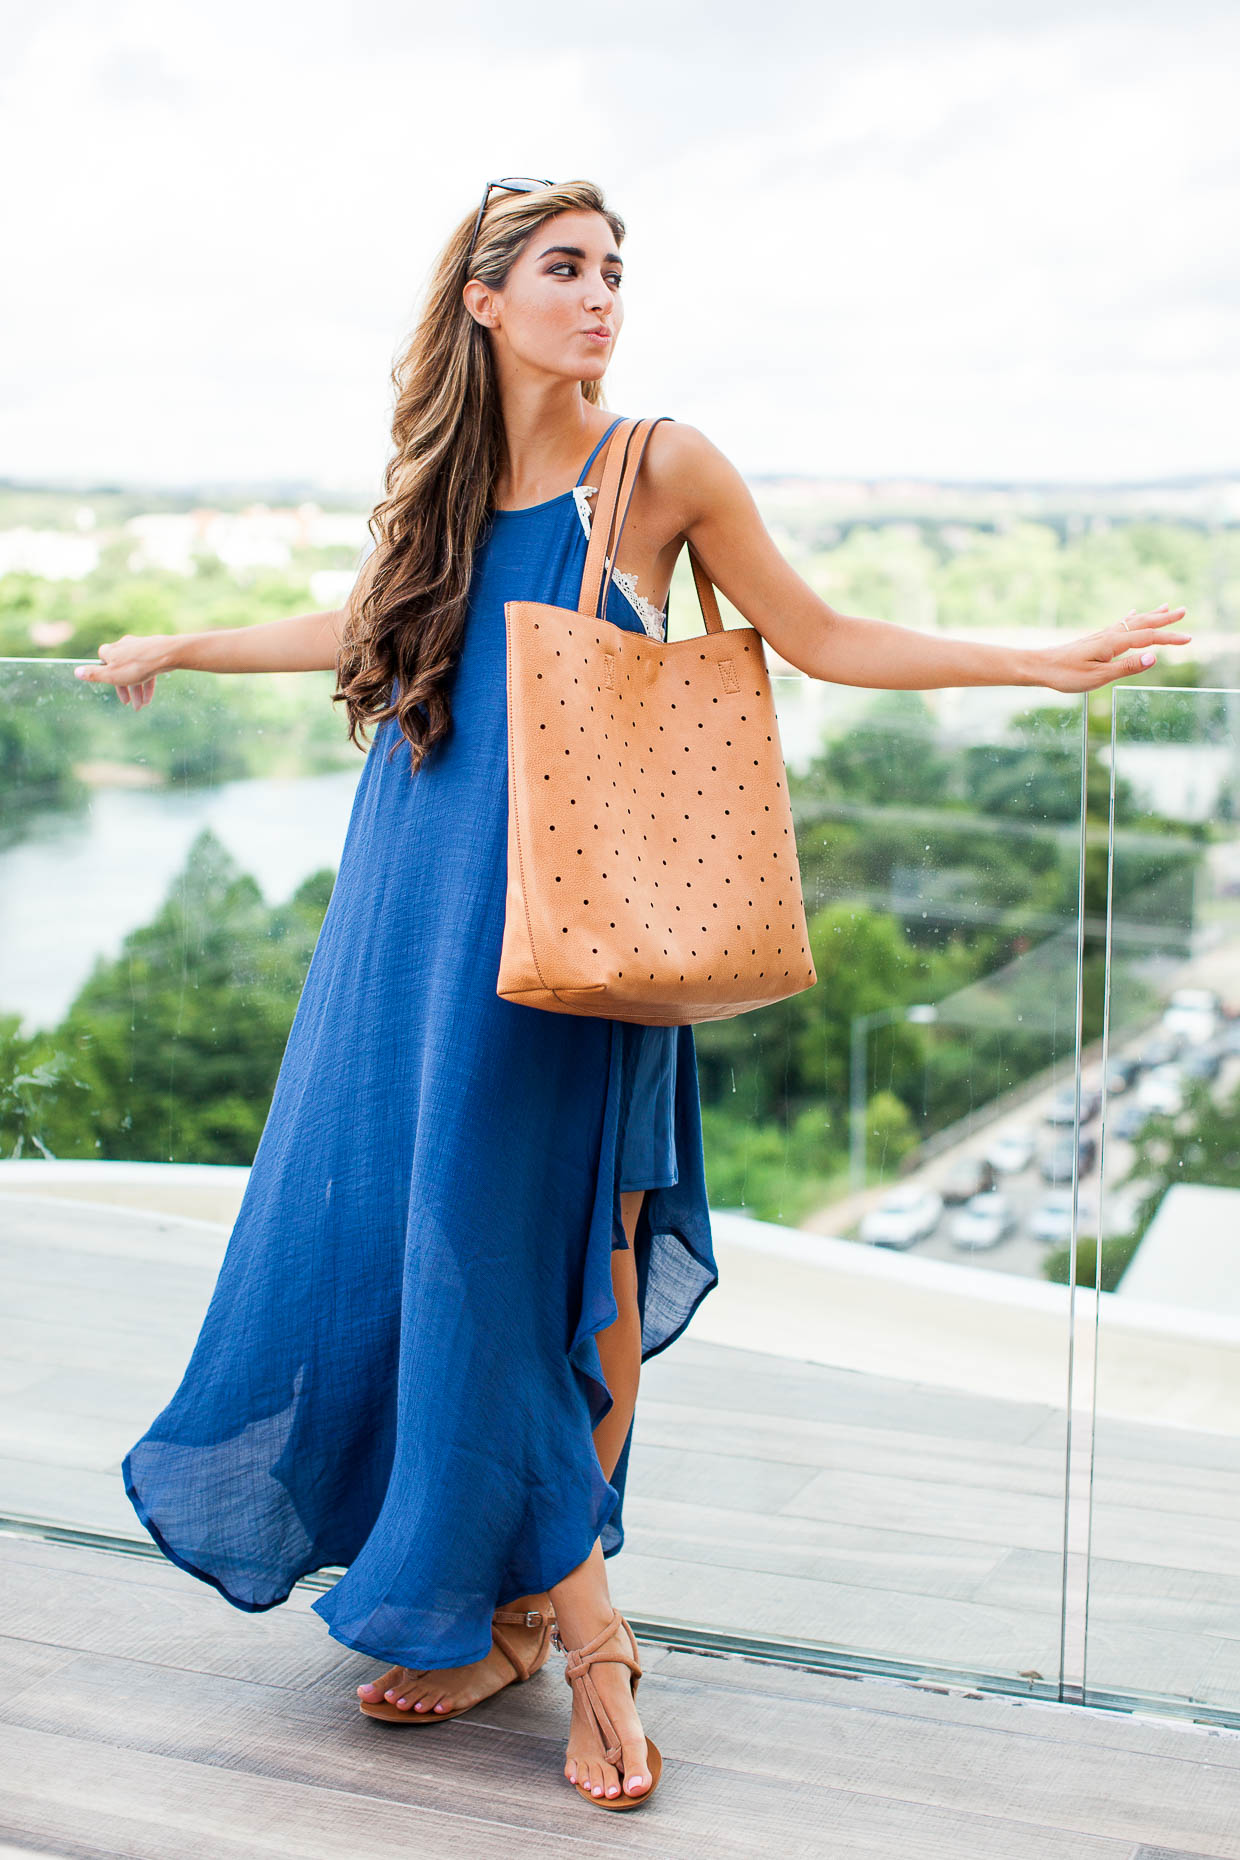 Fashion Blogger The Darling Detail is wearing a Love Squared Crochet Trim Maxi Dress, along with Sole Society Topaz Sandals, the Farrow Tote, and Garey Cateye Sunnies.